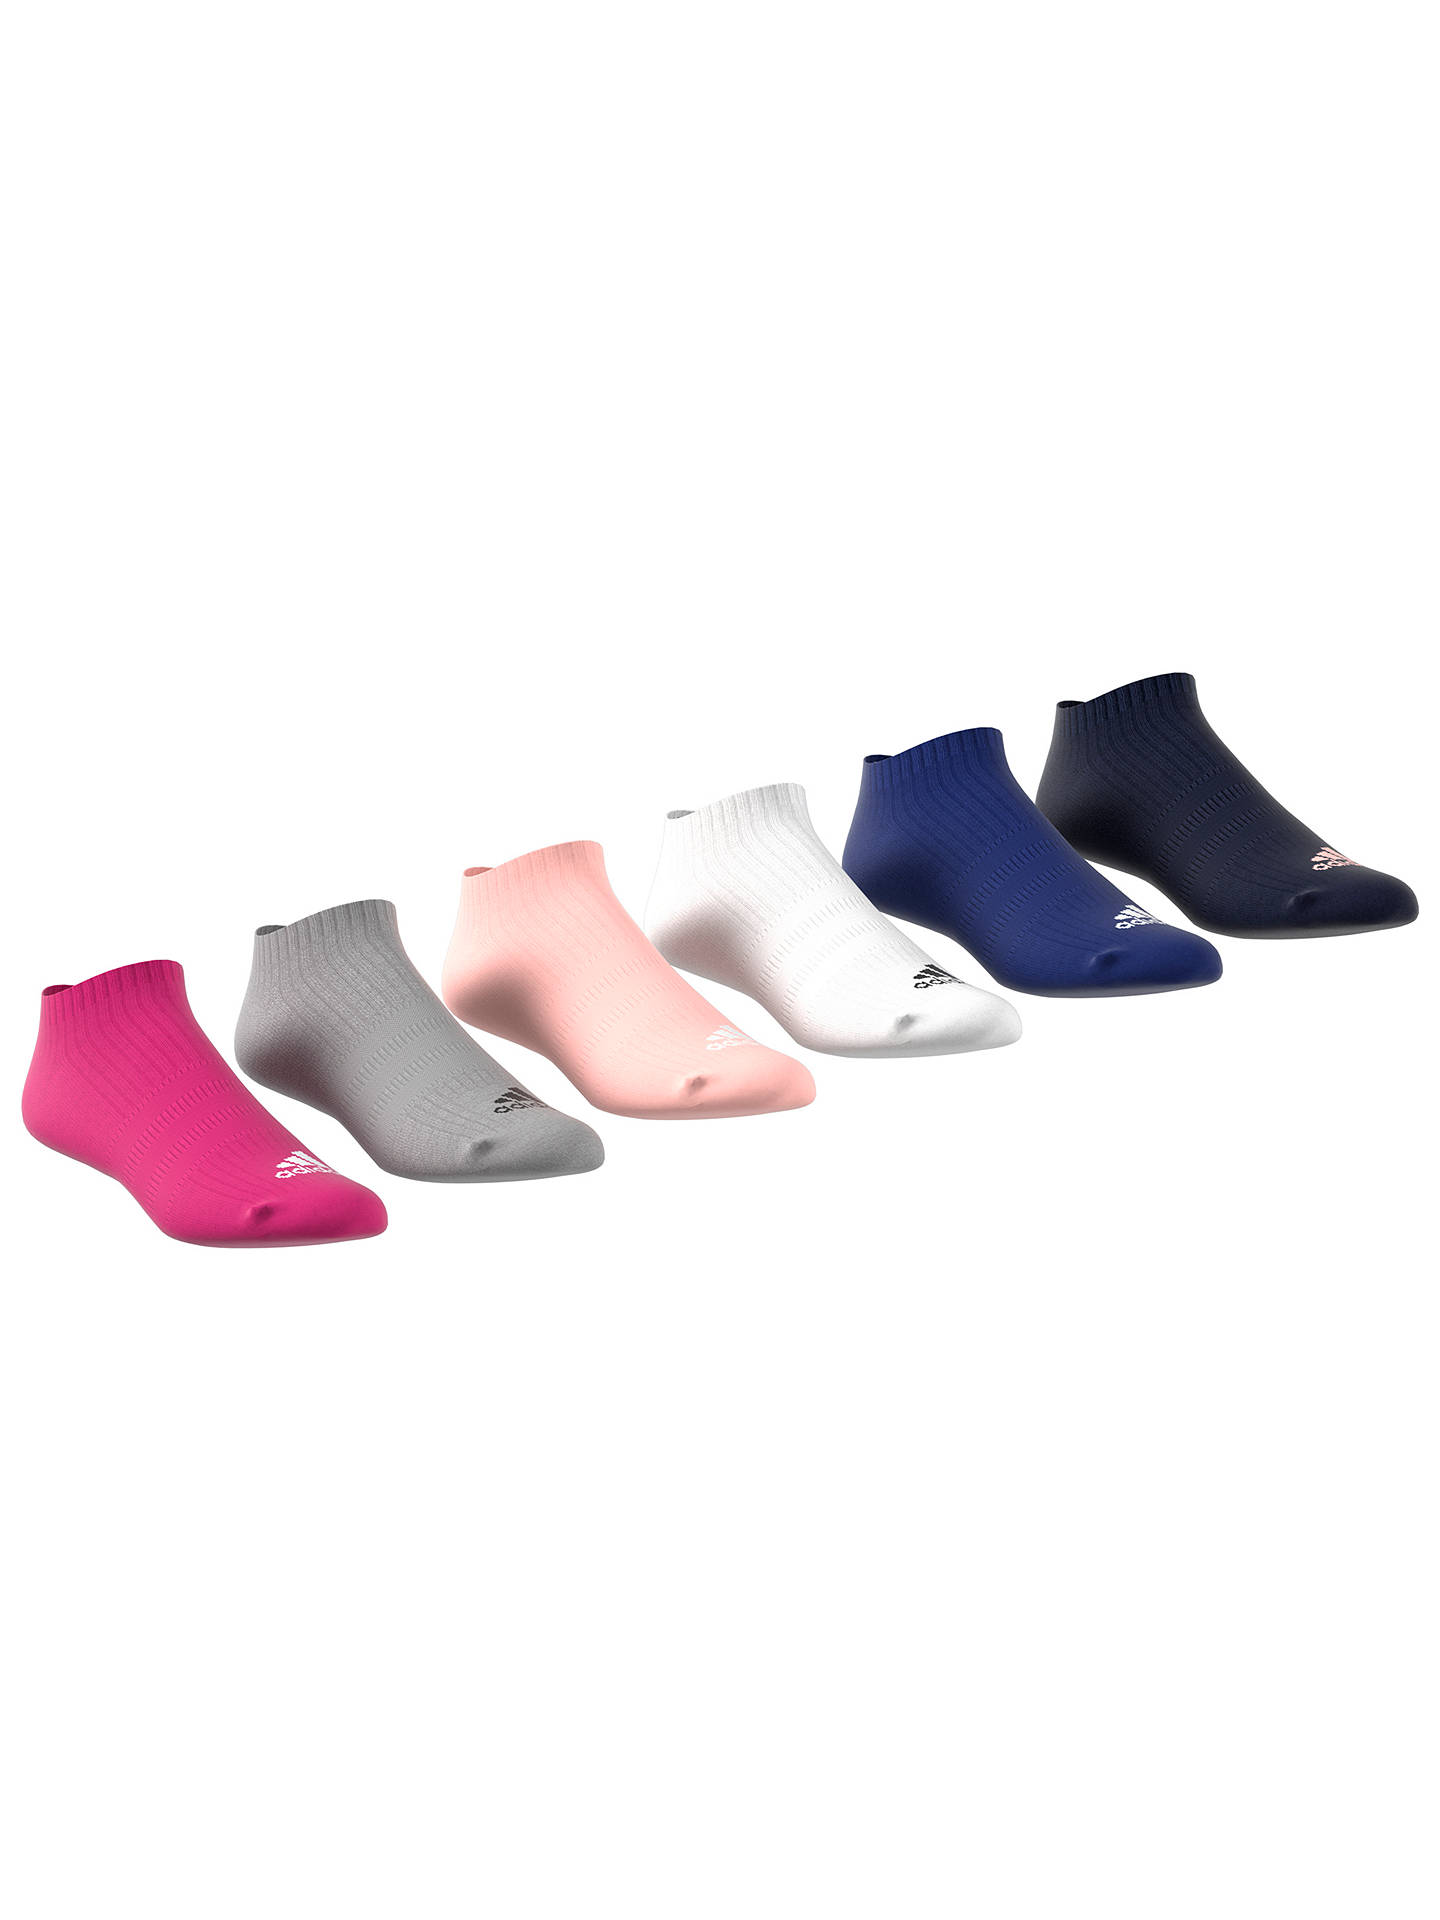 Buy adidas Trainer Socks, Pack of 6, Multi, S-M Online at johnlewis.com